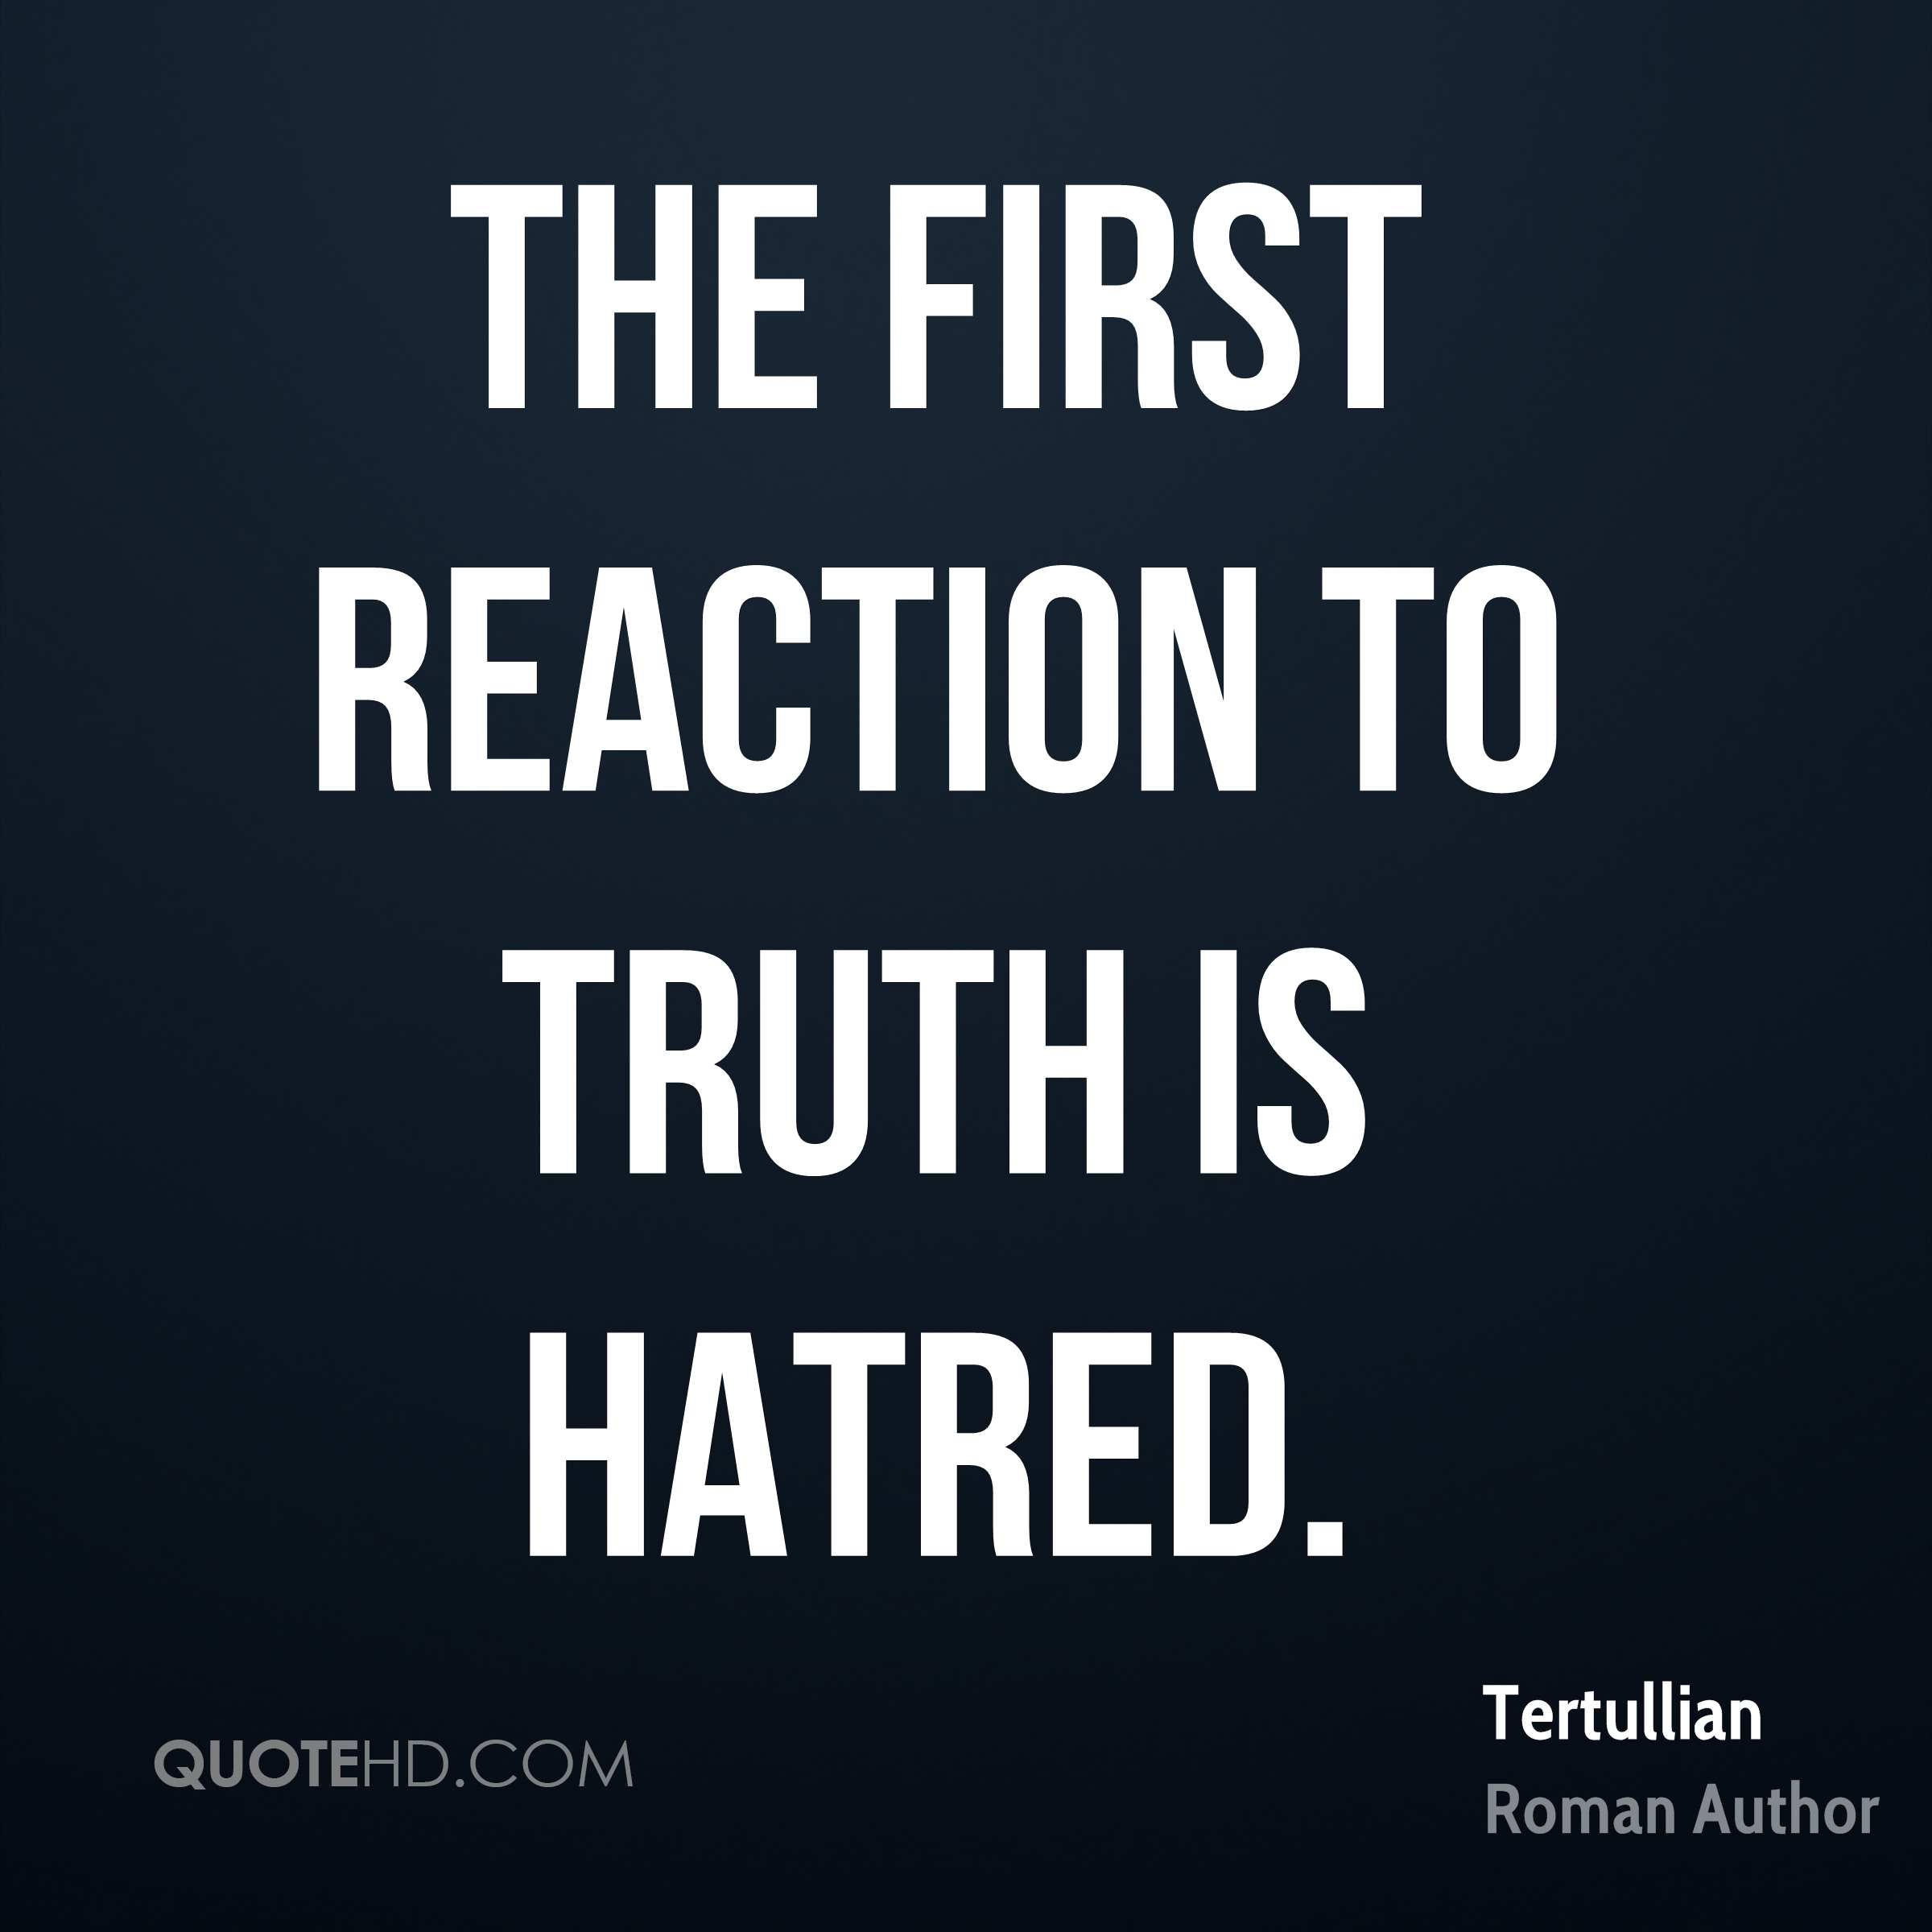 The first reaction to truth is hatred.